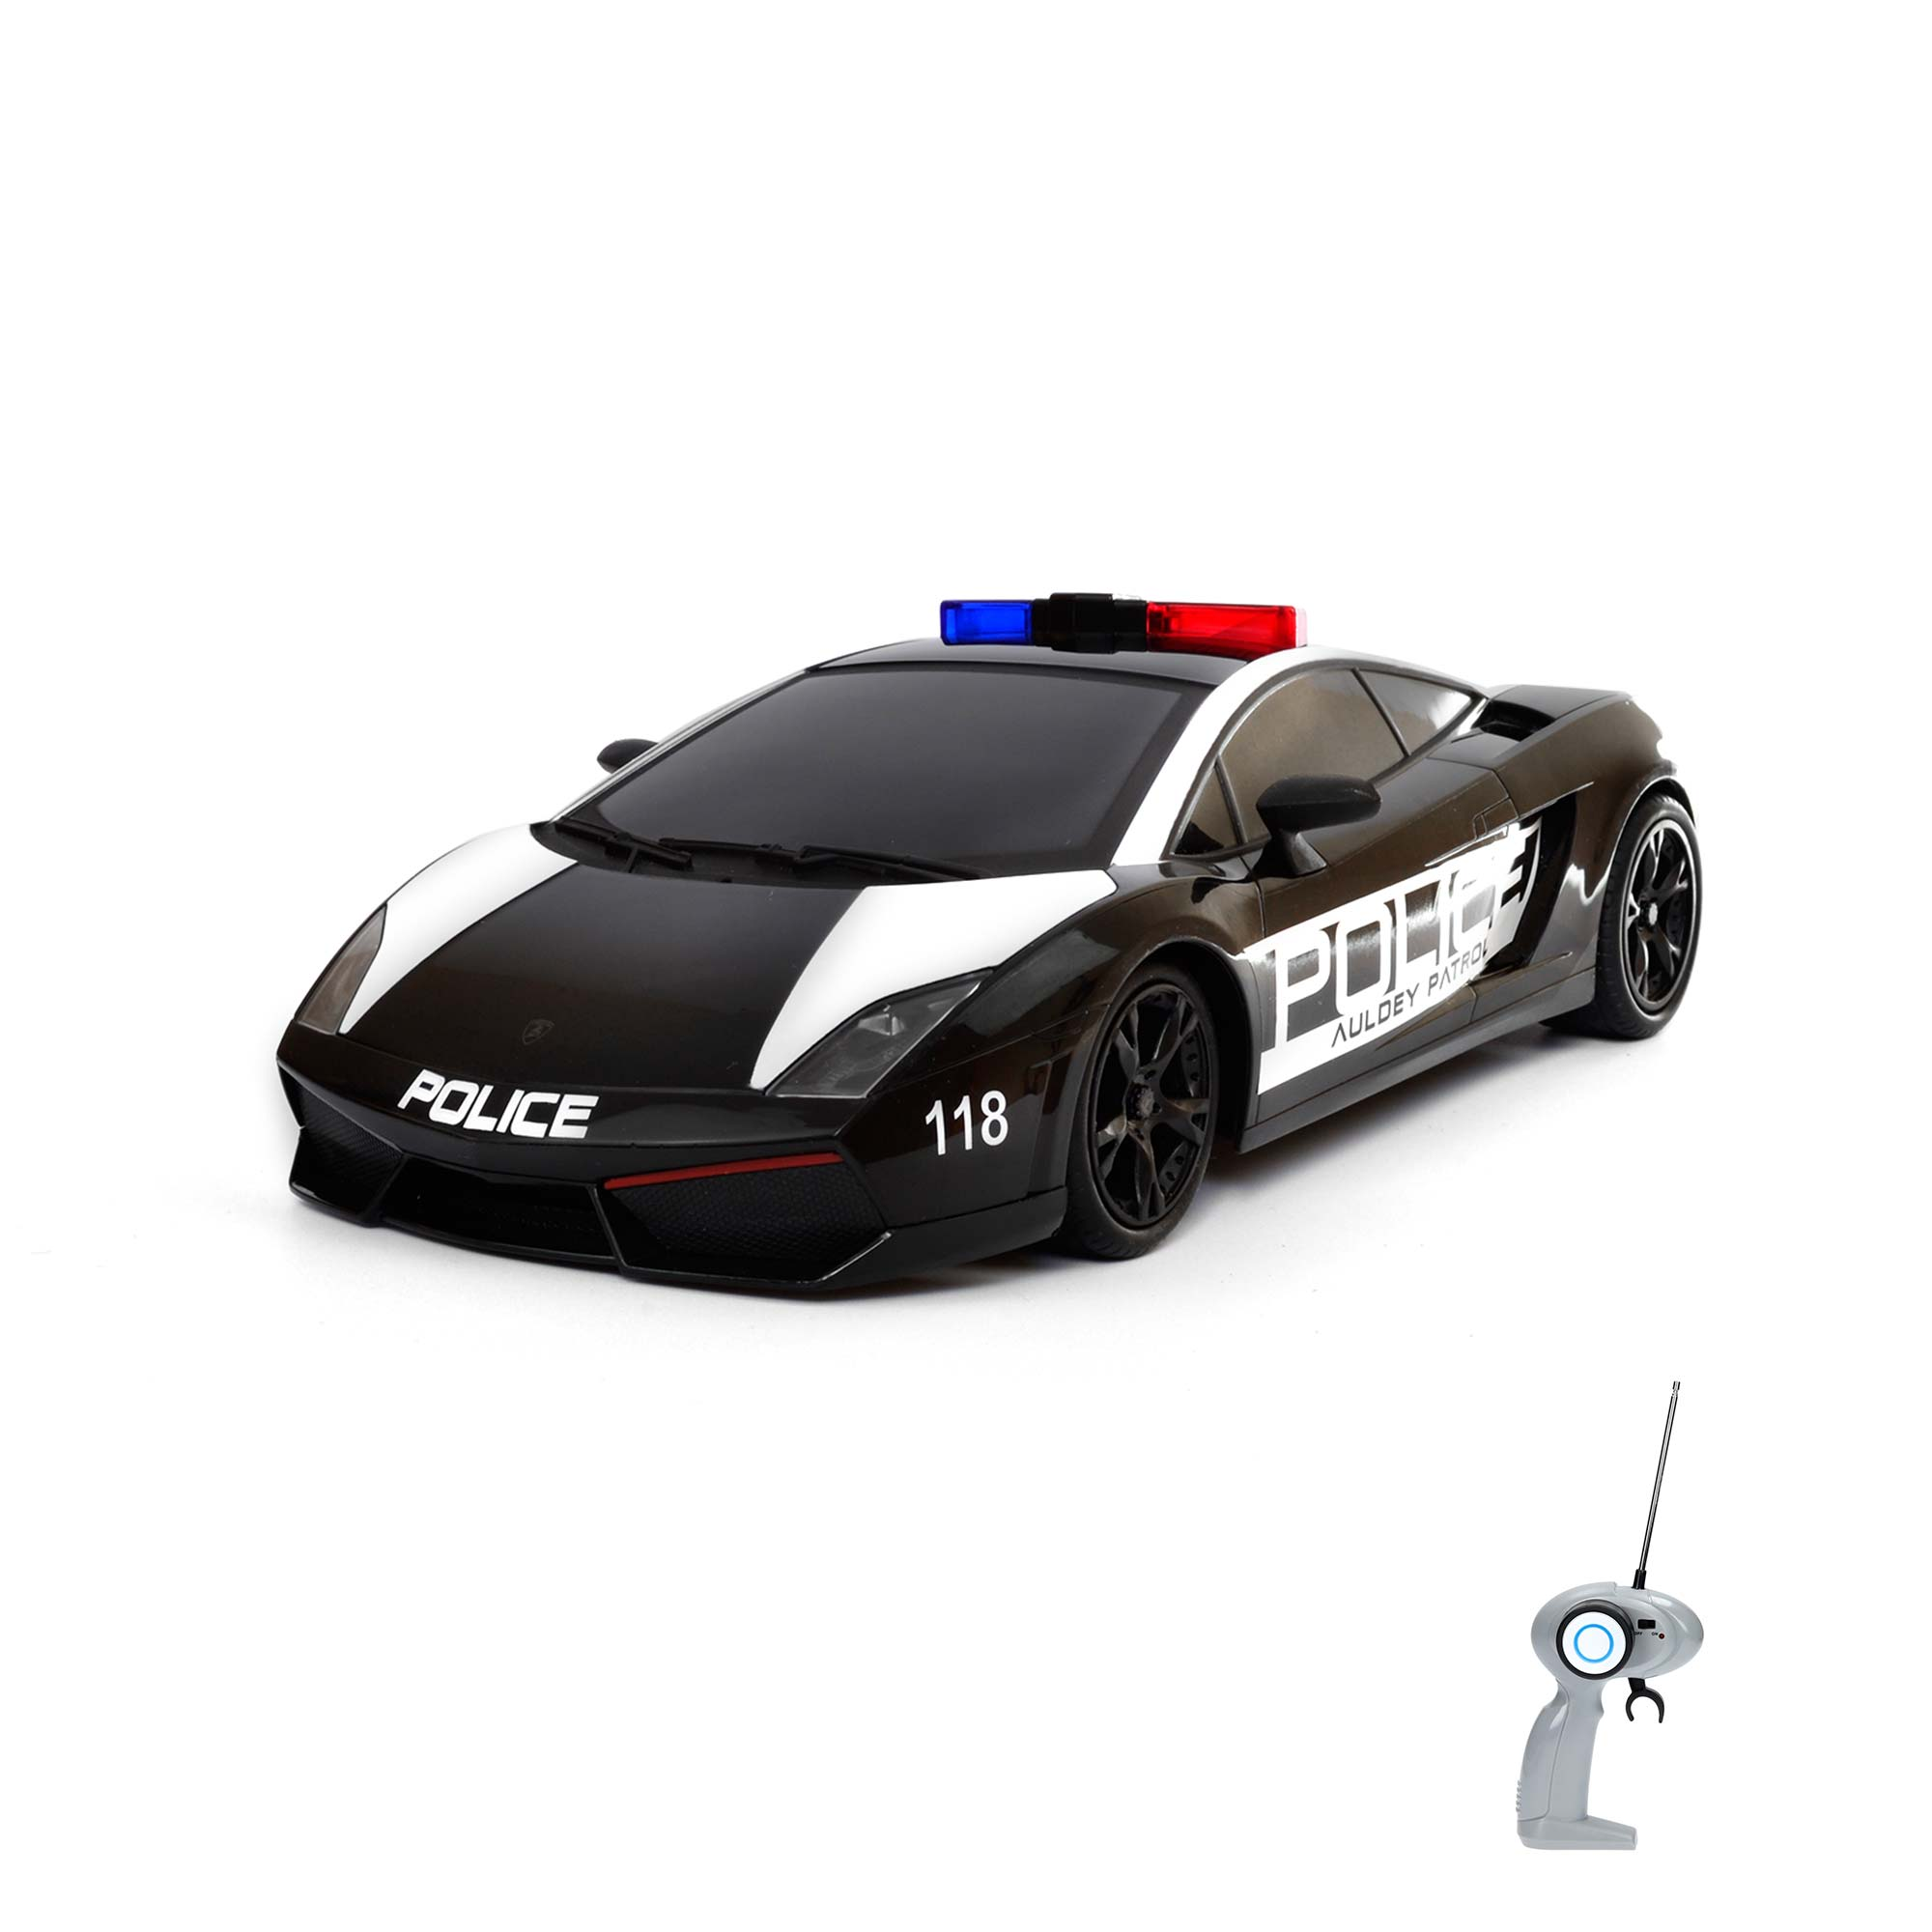 lamborghini gallardo lp560 4 rc ferngesteuertes polizei. Black Bedroom Furniture Sets. Home Design Ideas